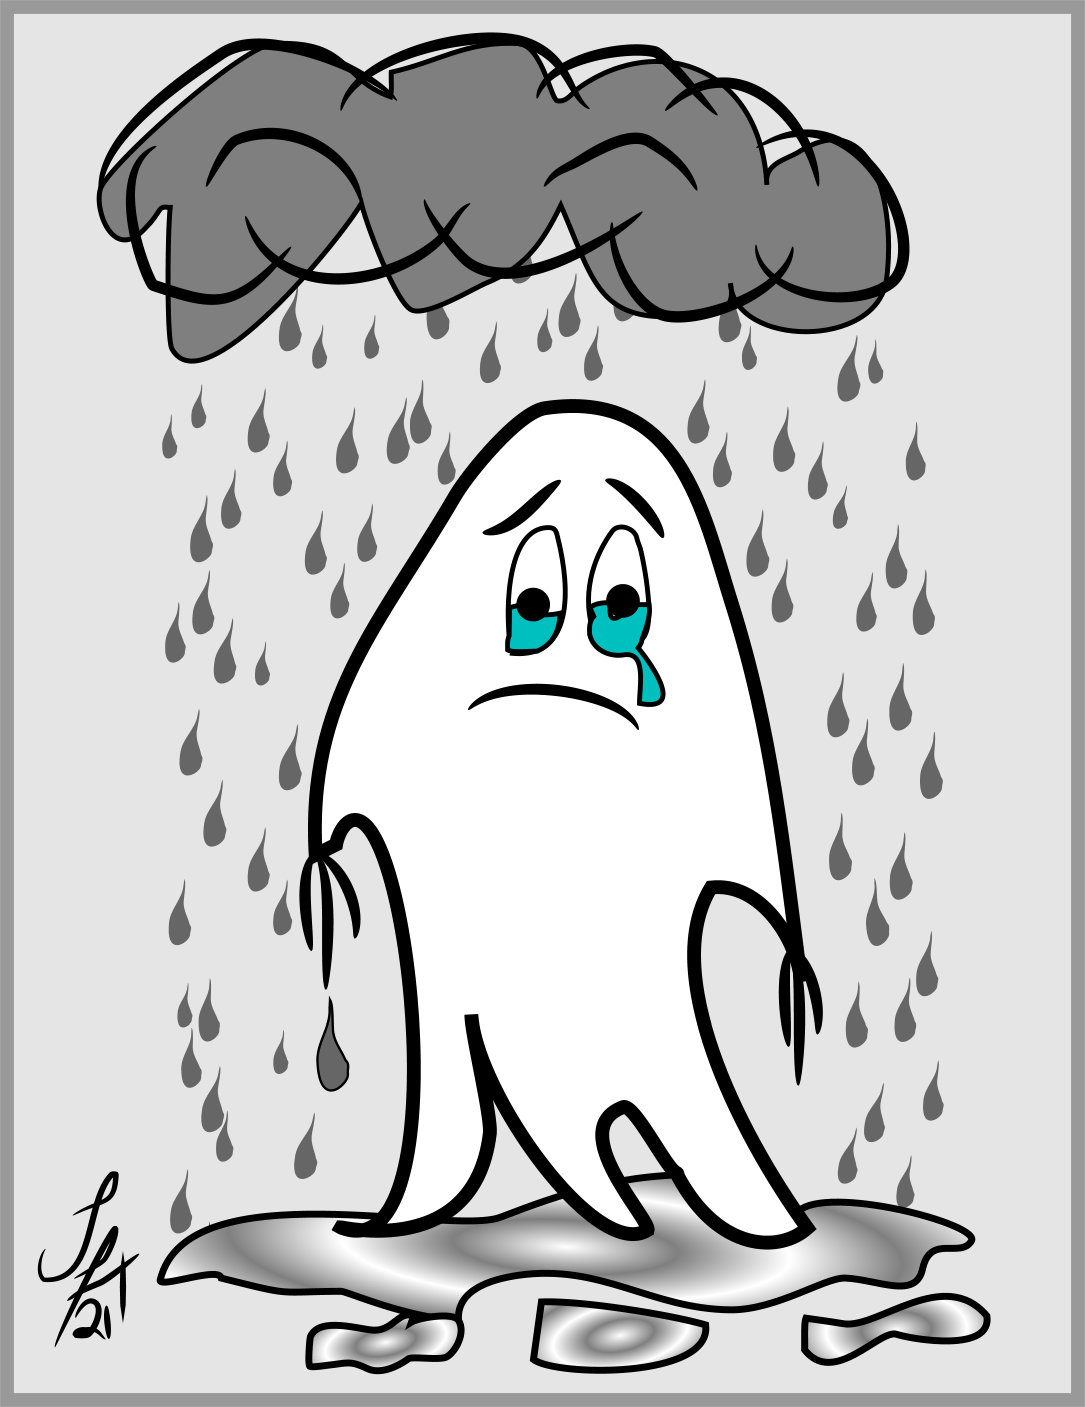 Poor me! illustration by Silvia Hartmann - crying in the rain under a thundercloud whilst standing in a puddle